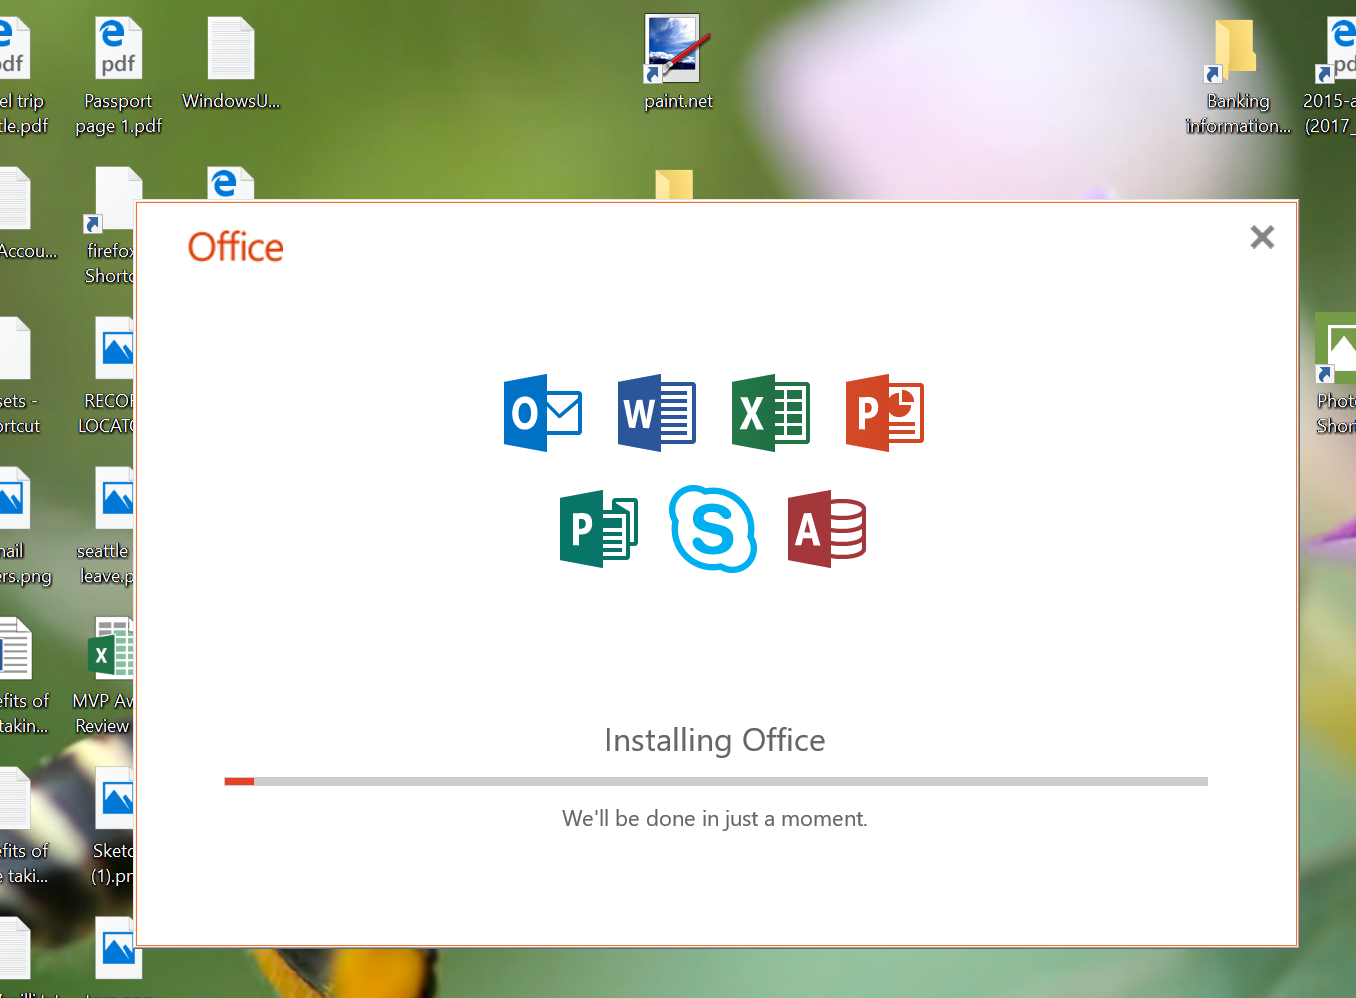 Office 365 and new Outlook simplified ribbon 3290a3be-8862-4229-a78c-2c2ff4eecd9d?upload=true.png